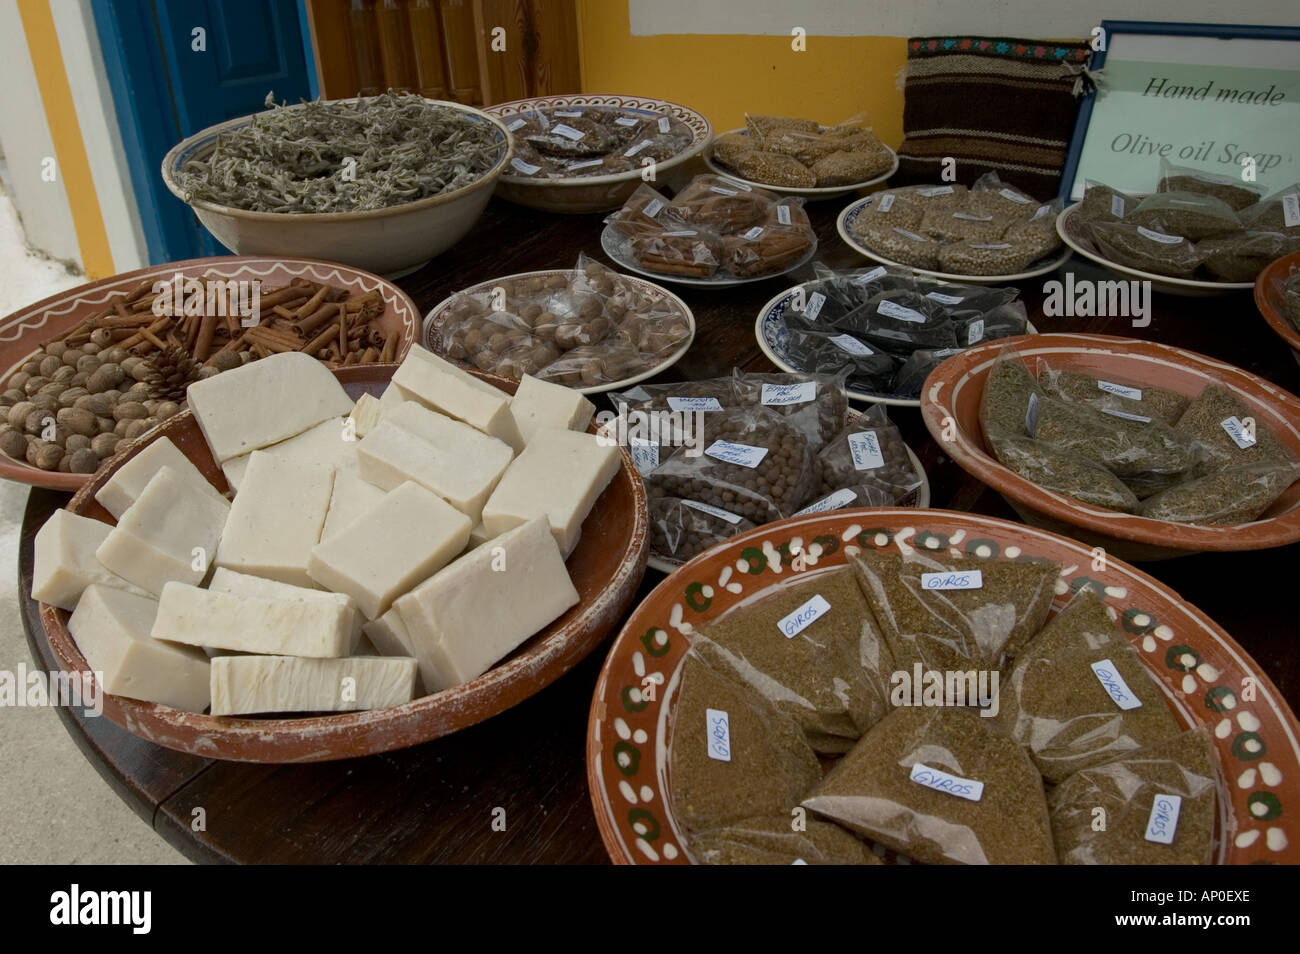 Greece, Karpathos, Olymbos: soap and spices on sale Stock Photo